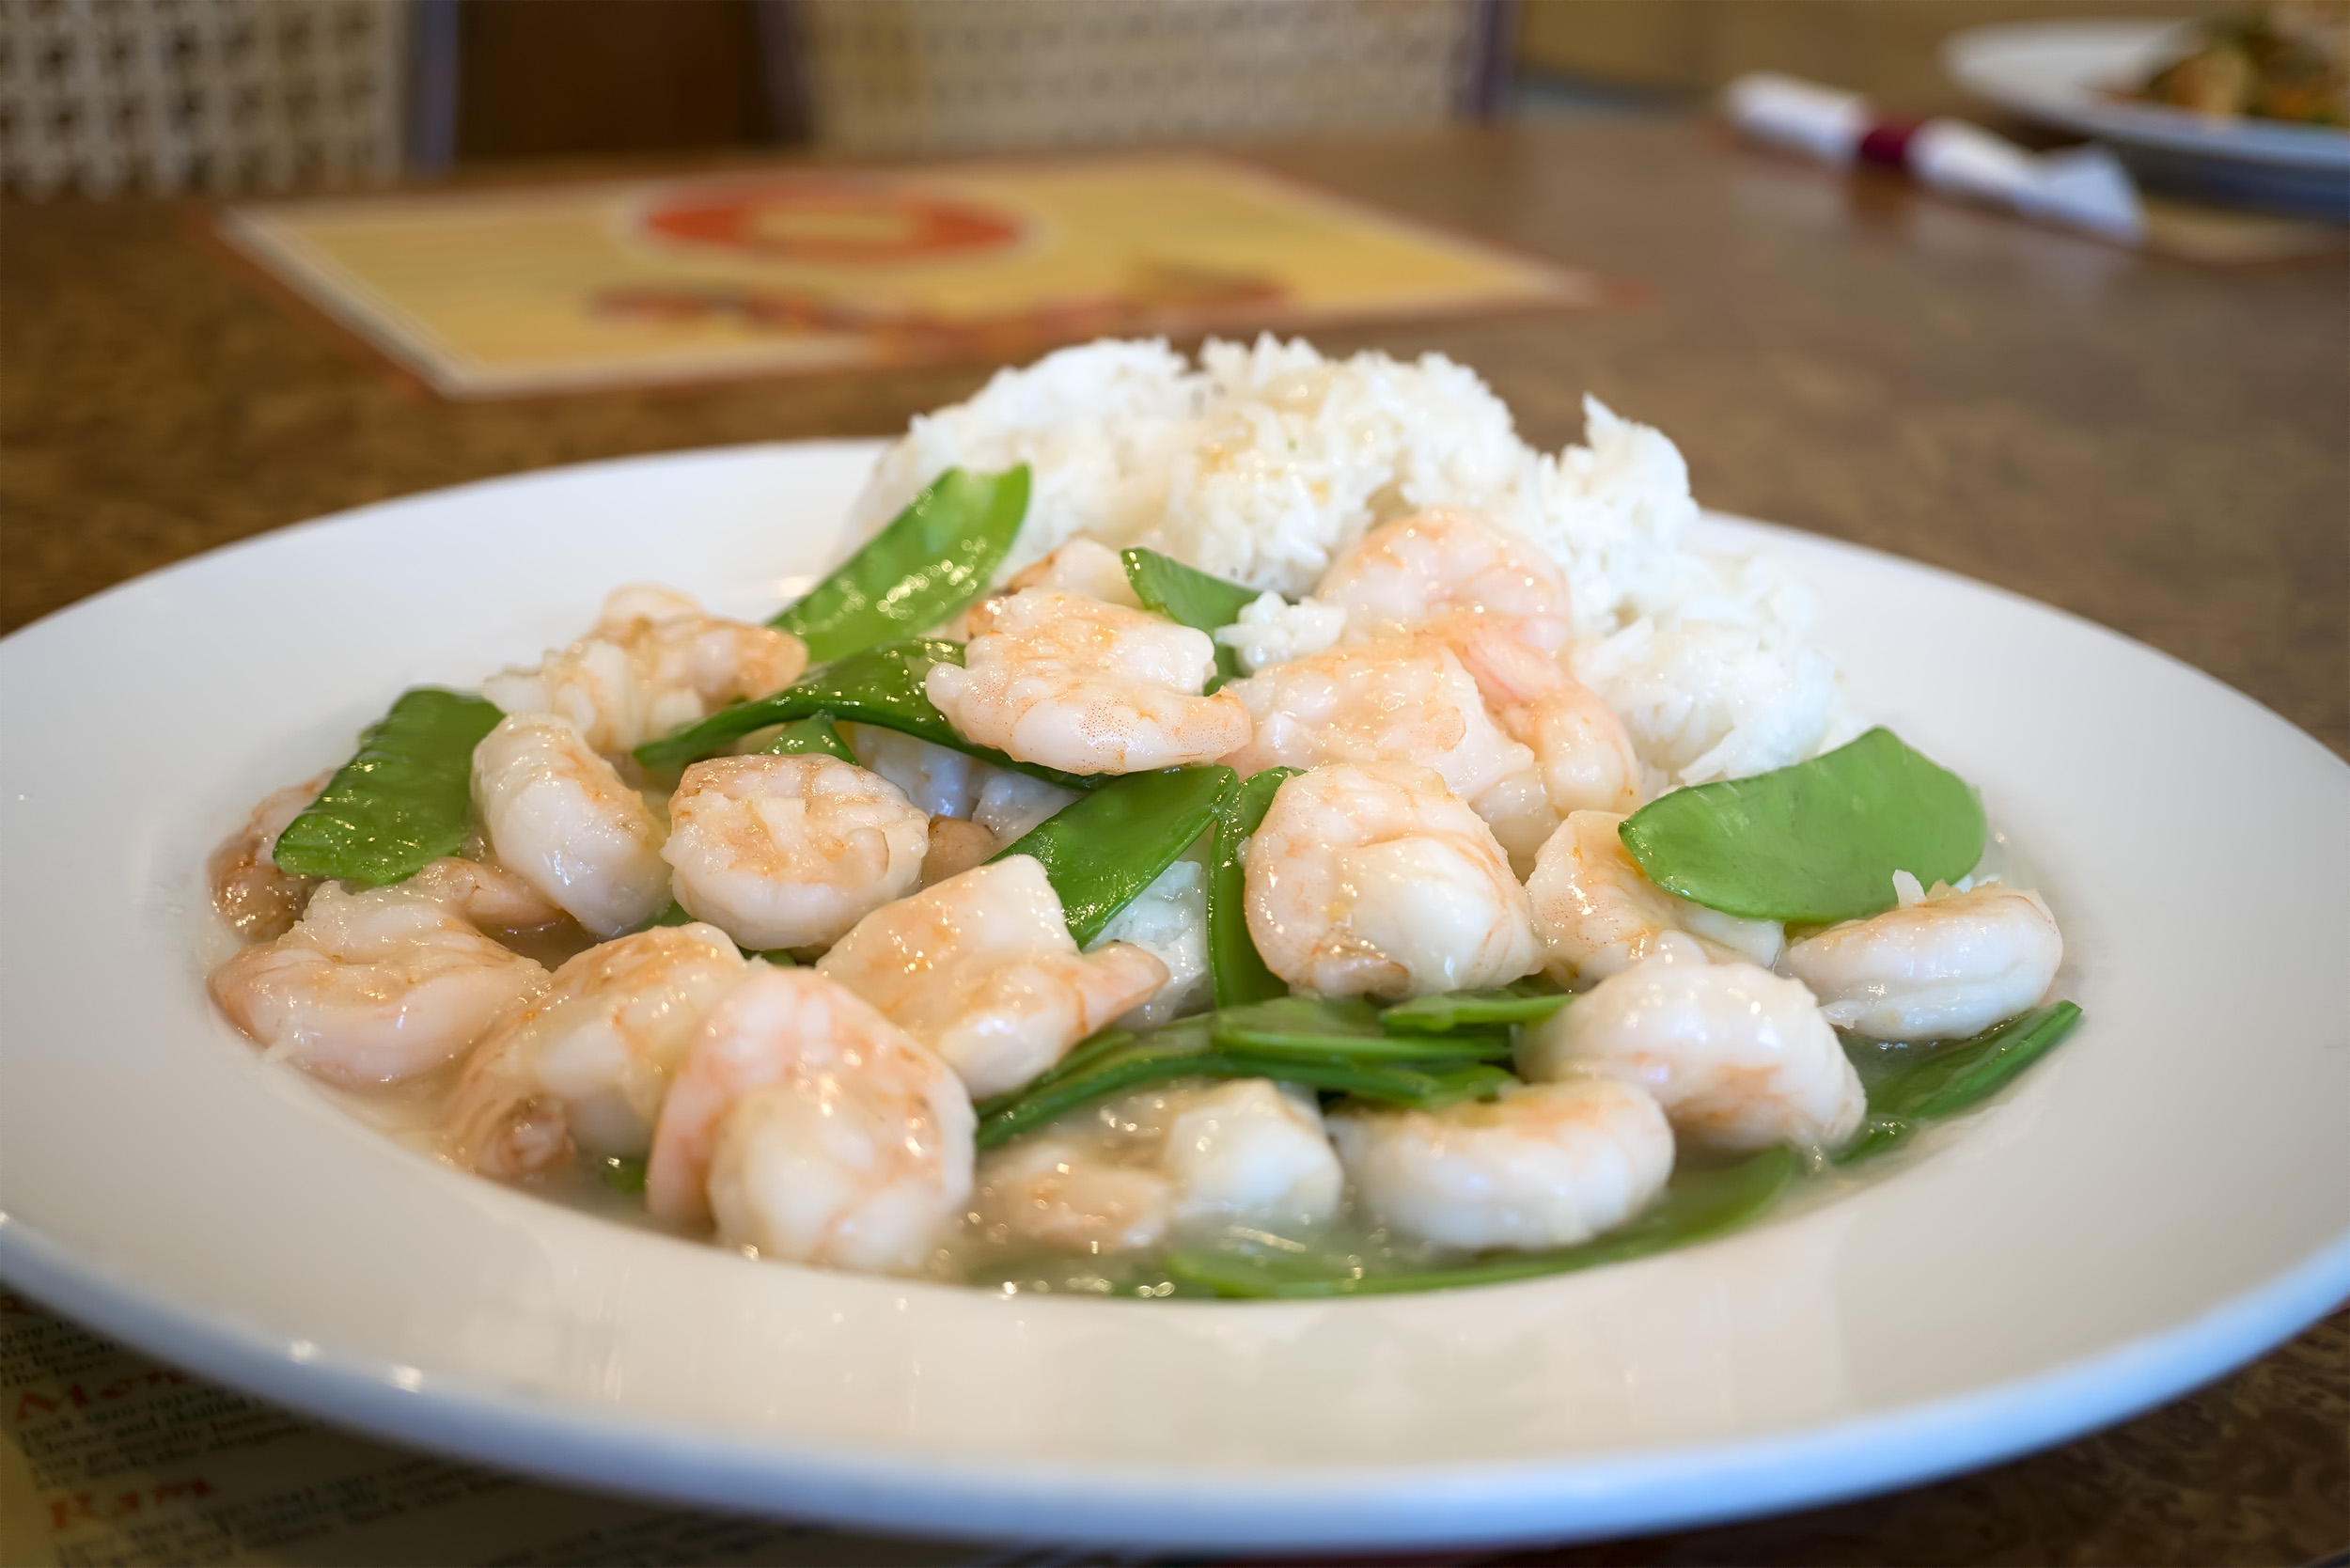 14. Shrimp with Pea Pods Image